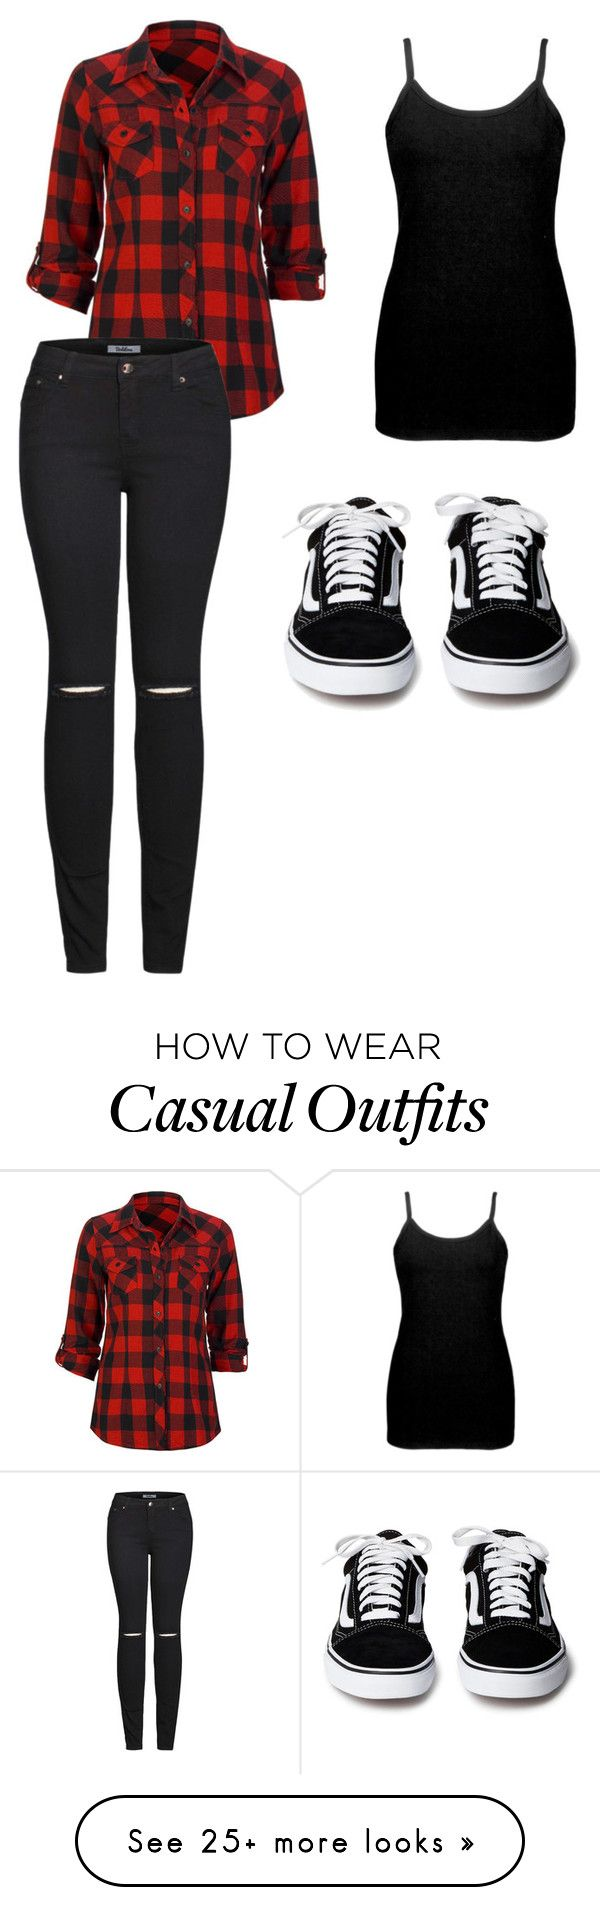 """""""Casual Plaid"""" by emoemily21 on Polyvore featuring BKE core, Full Tilt and 2LUV"""